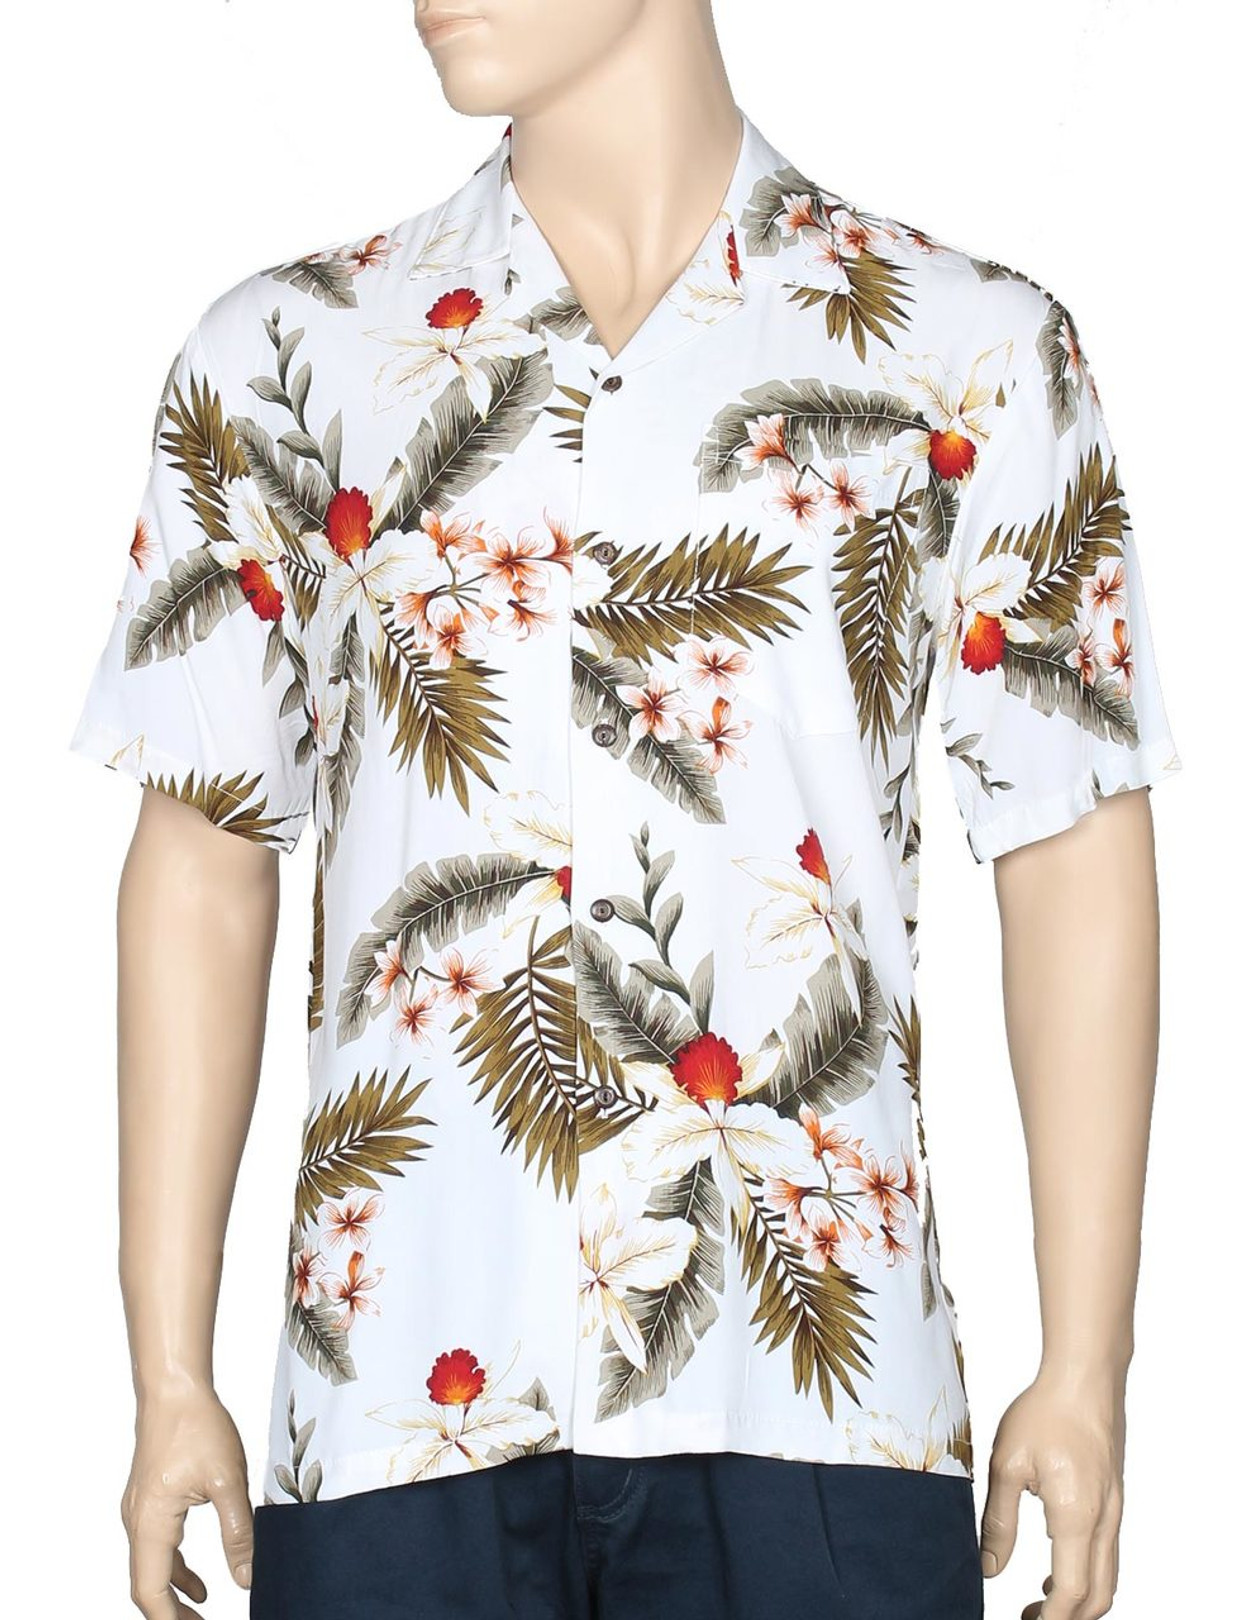 ad9be04b Hibiscus Tropical Rayon Shirt White 100% Rayon - Soft and Classy Open  Collar - Relaxed